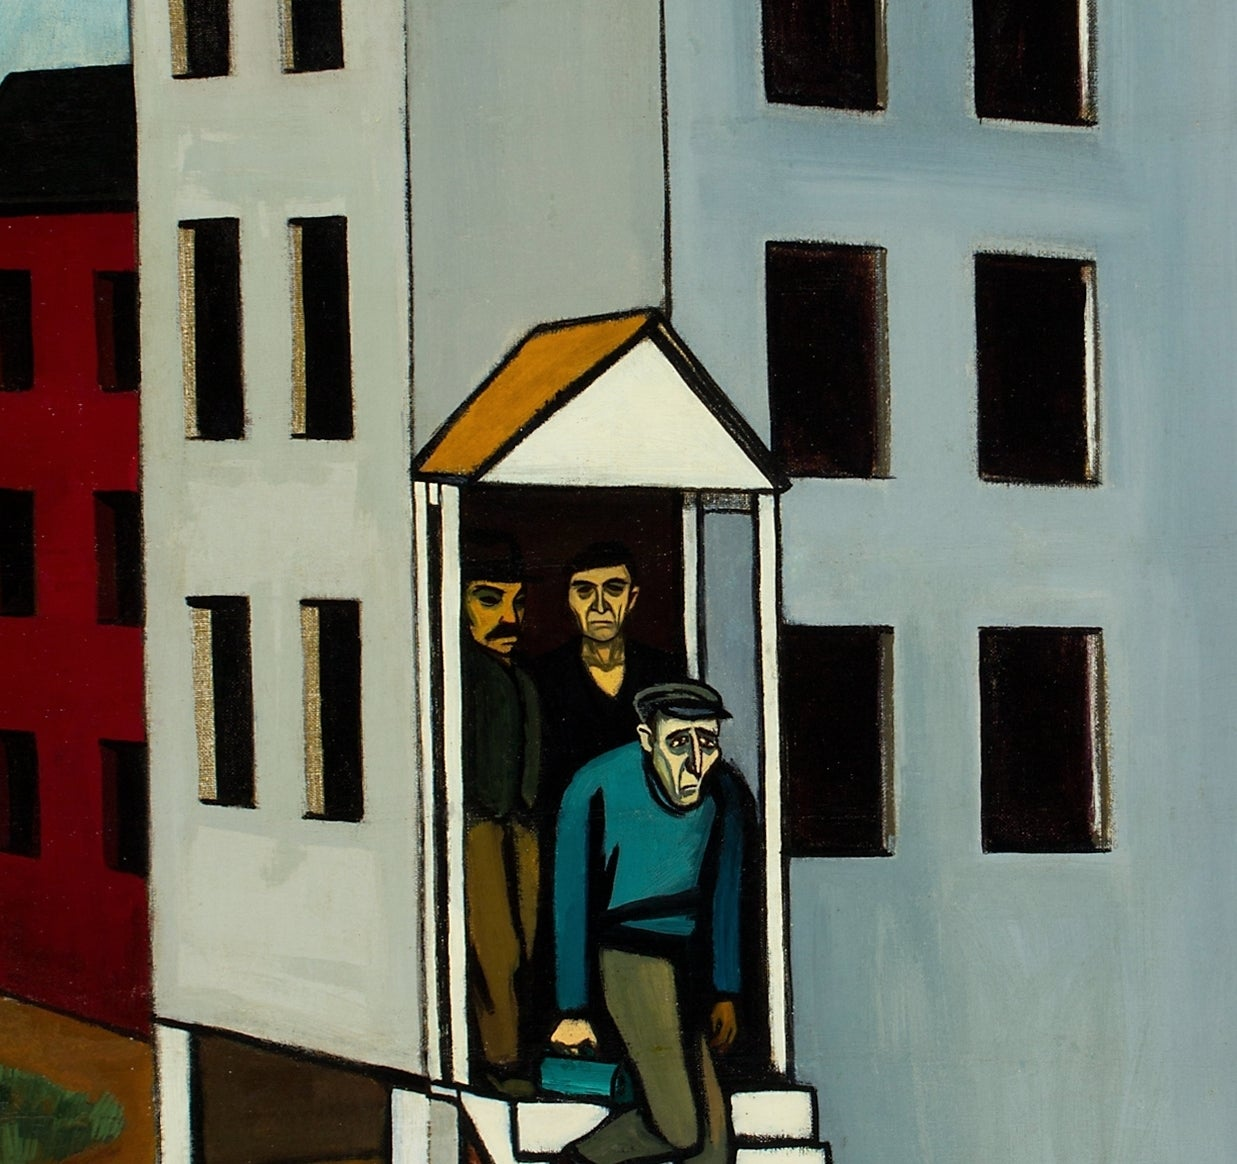 The Factory - American Modern Painting by Gregorio Prestopino